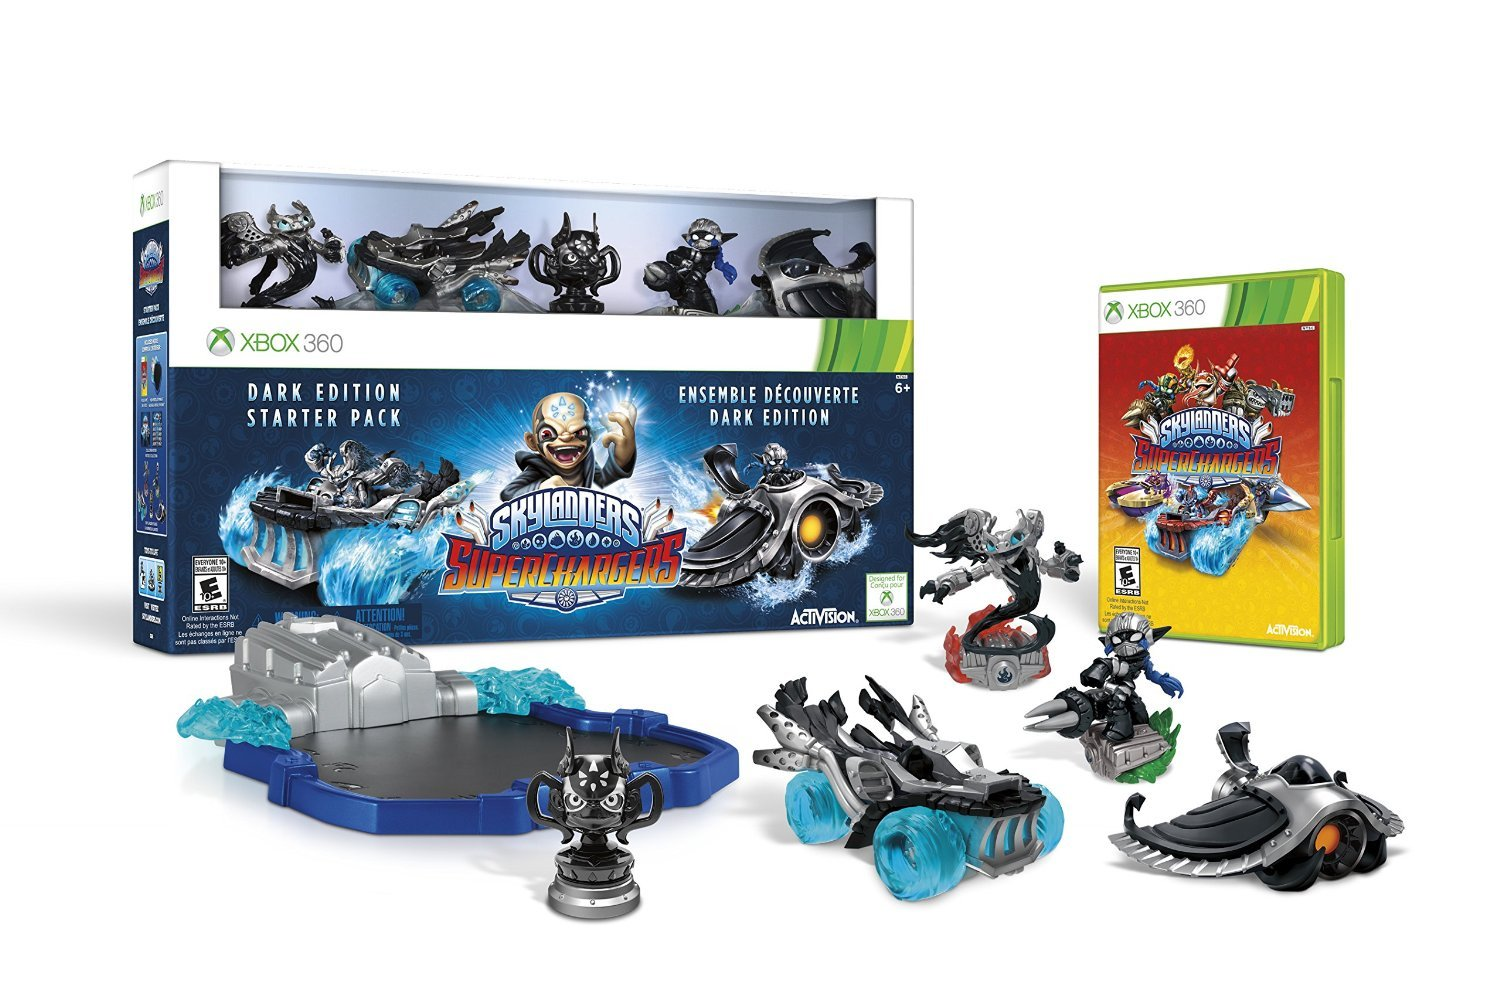 Skylanders SuperChargers Dark Edition Starter Pack Xbox 360 Physical Game Disc US